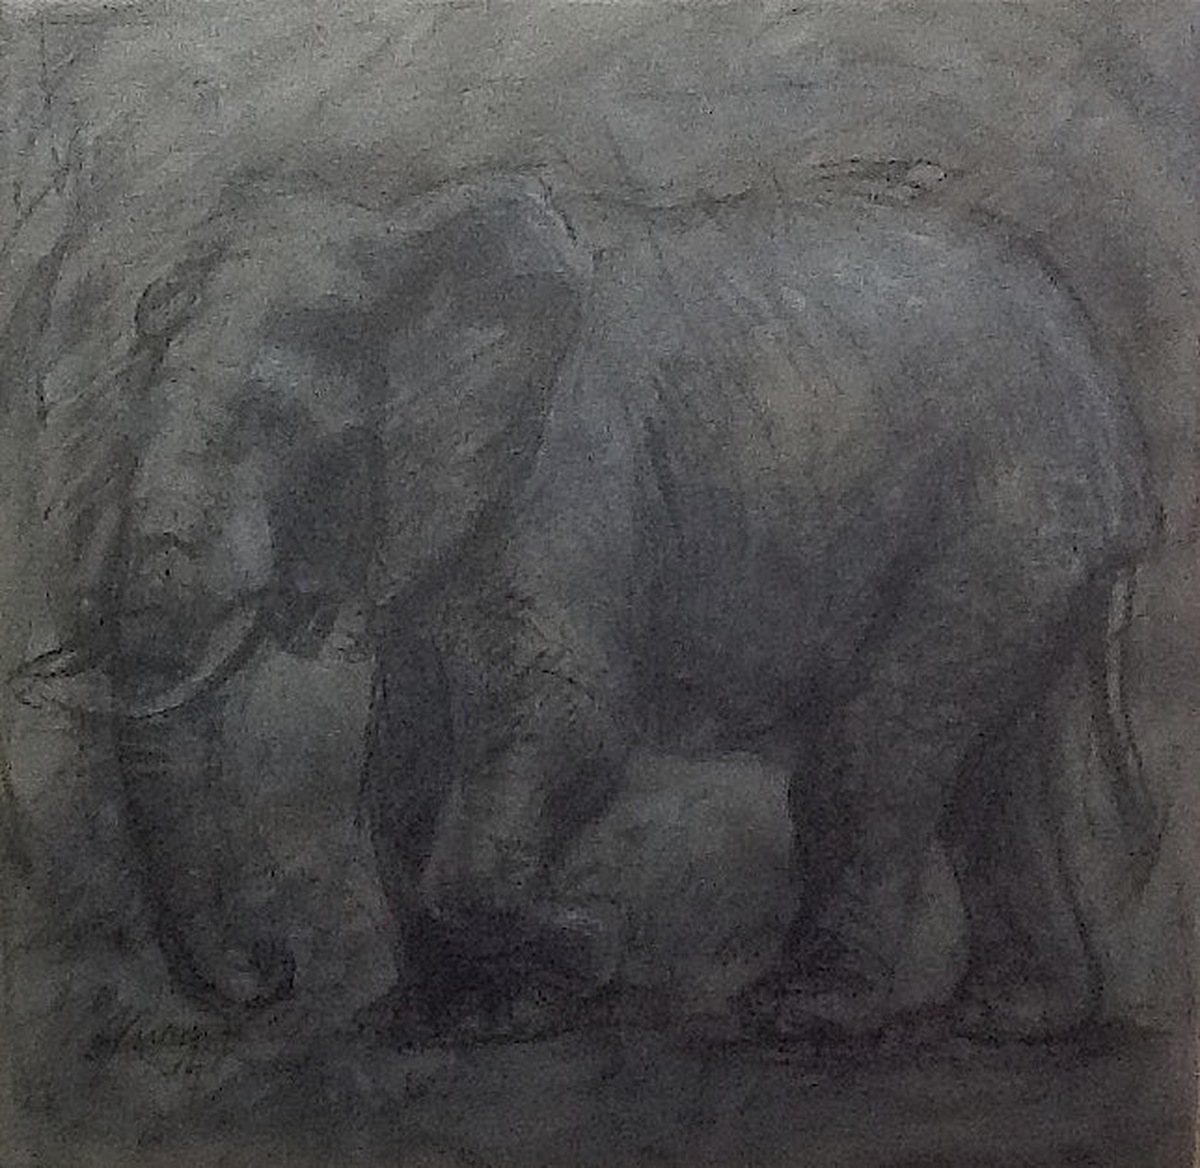 Extinct Fossil: Elephant (large view)